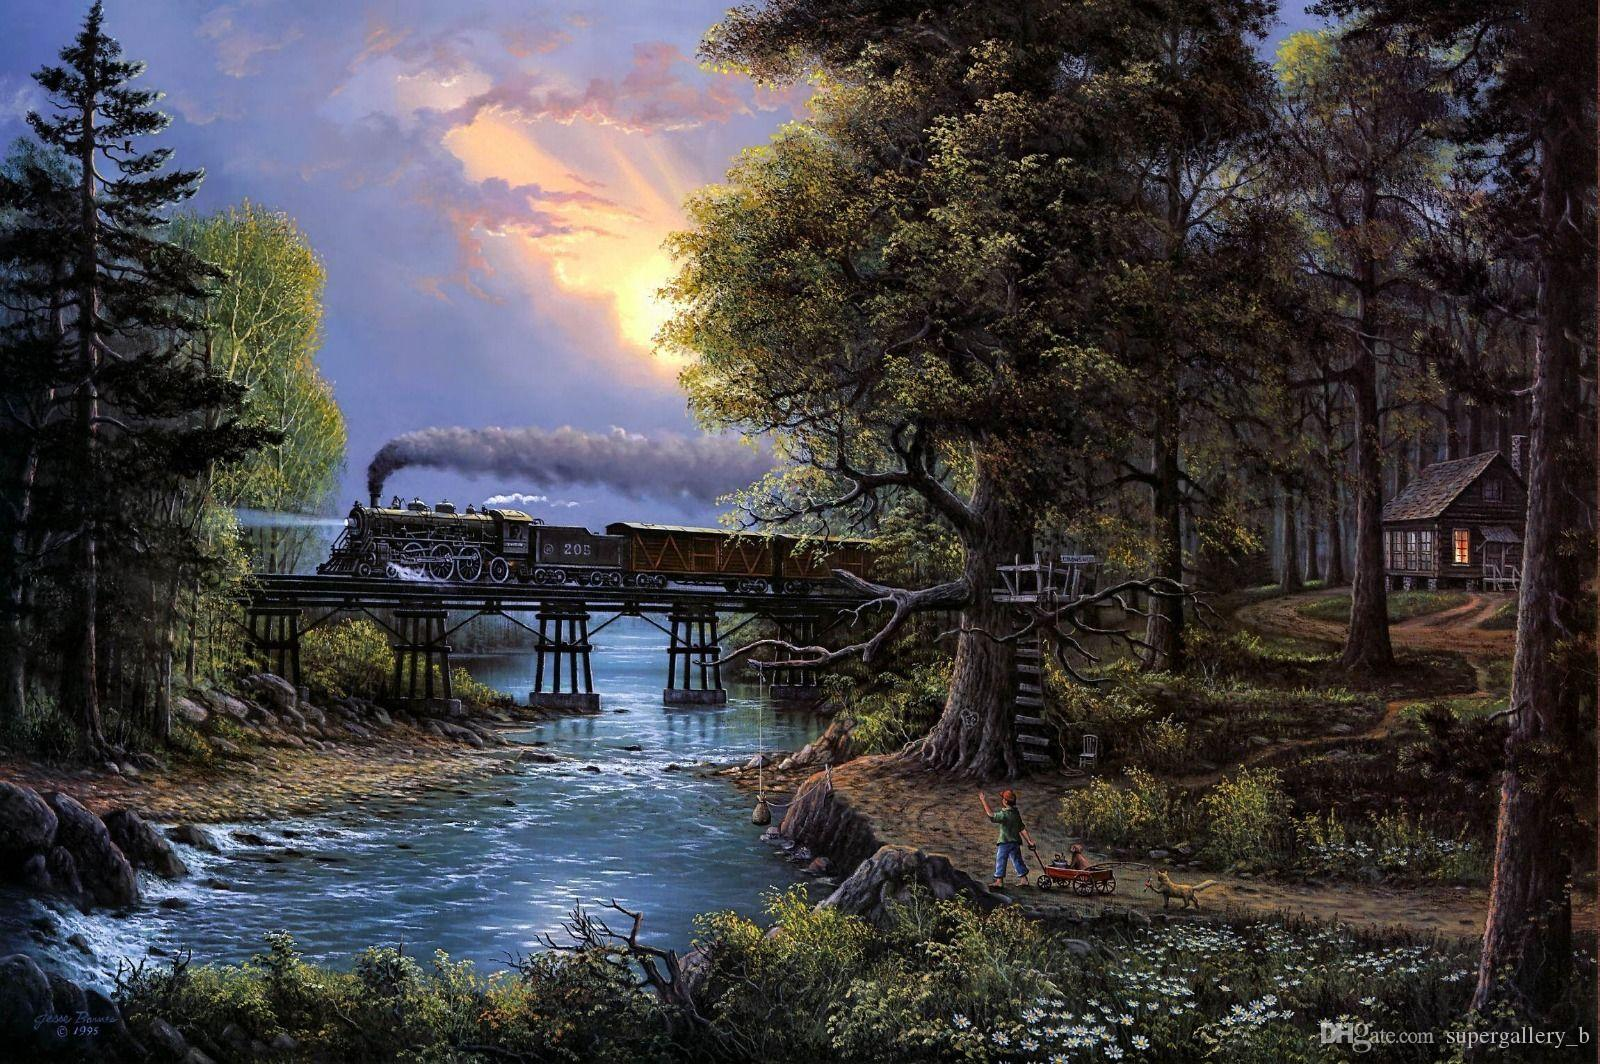 2019 Jesse Barnes The Train And The Forest Hd Art Print Painting On